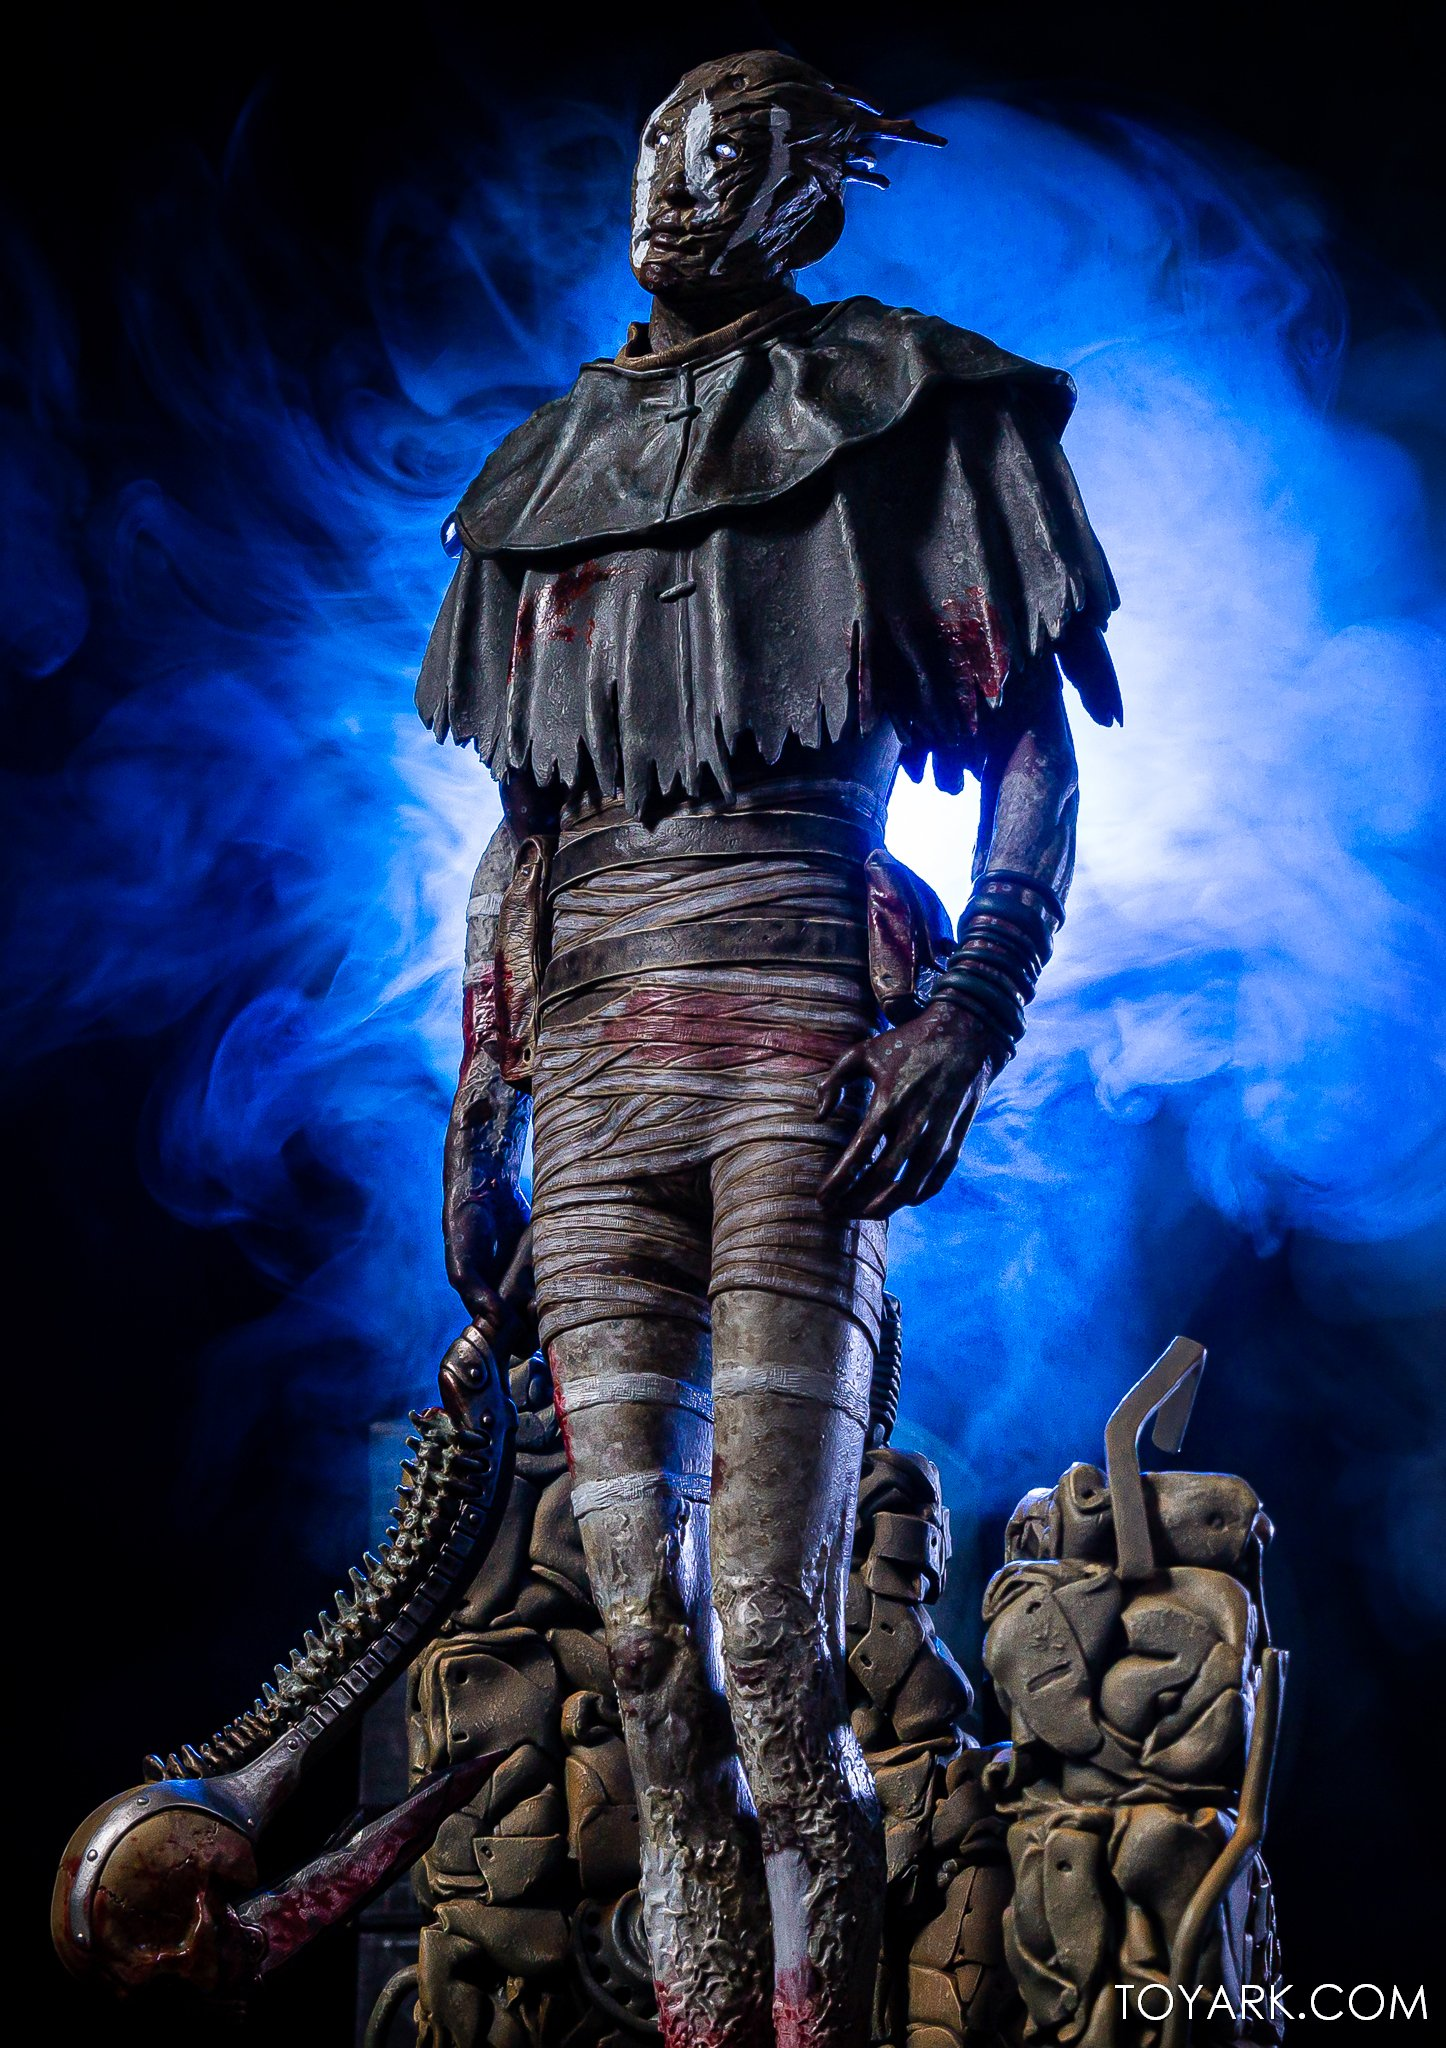 https://news.toyark.com/wp-content/uploads/sites/4/2020/02/Gecco-The-Wraith-Statue-032.jpg